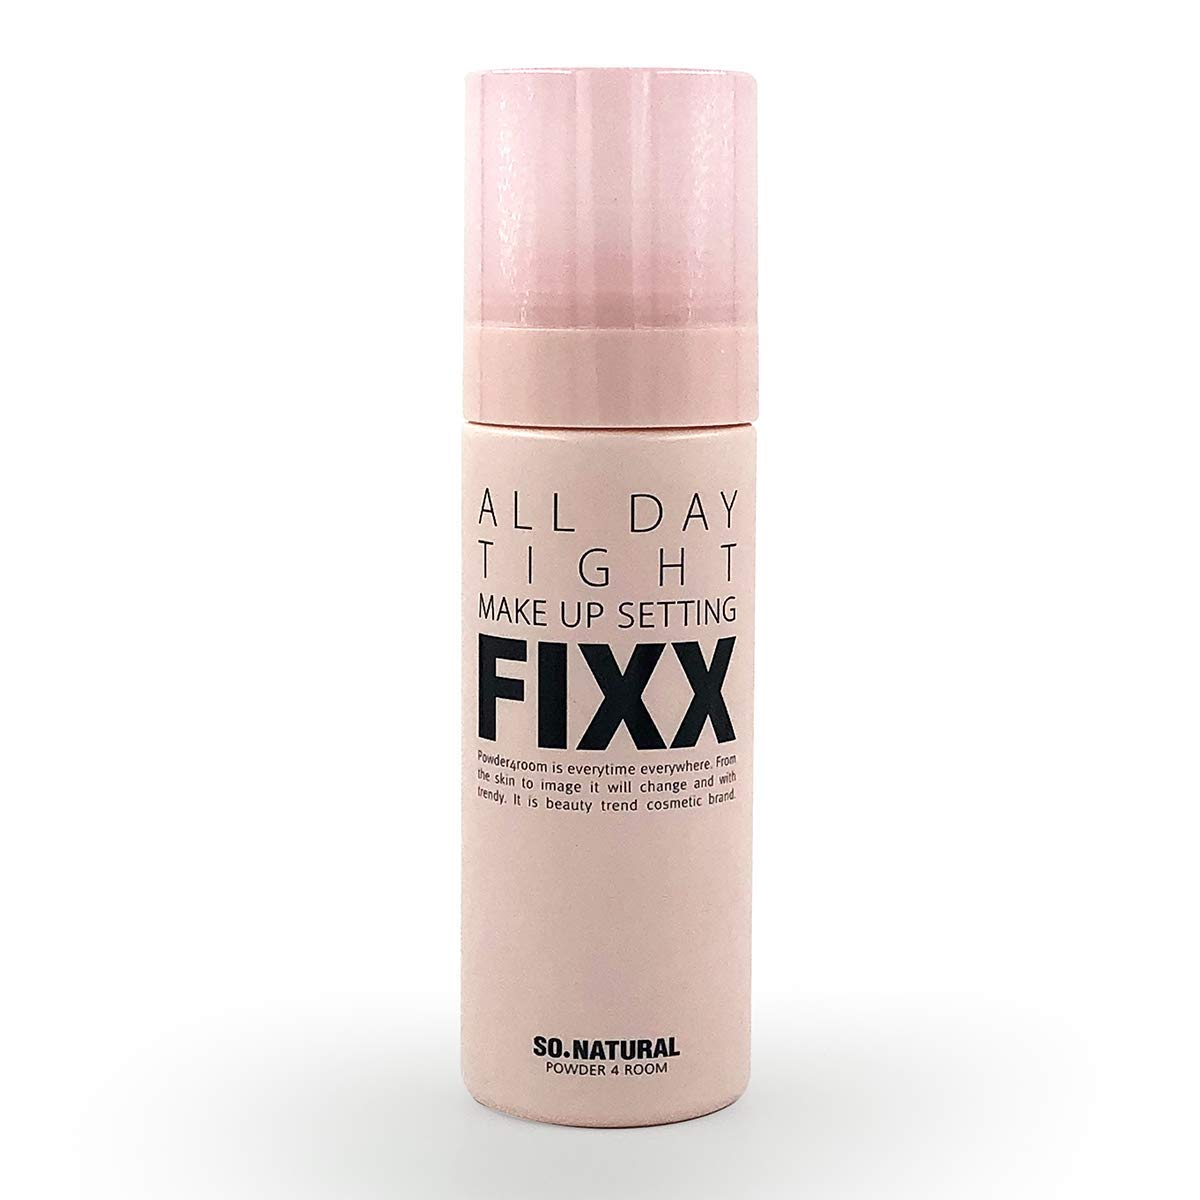 """SO NATURAL Face Makeup Setting Finishing Spray (75 ml, 2.5 oz) -""""All Day Tight Make Up Setting FIXX"""" - all day make up makeup setting fixer finishing spray"""